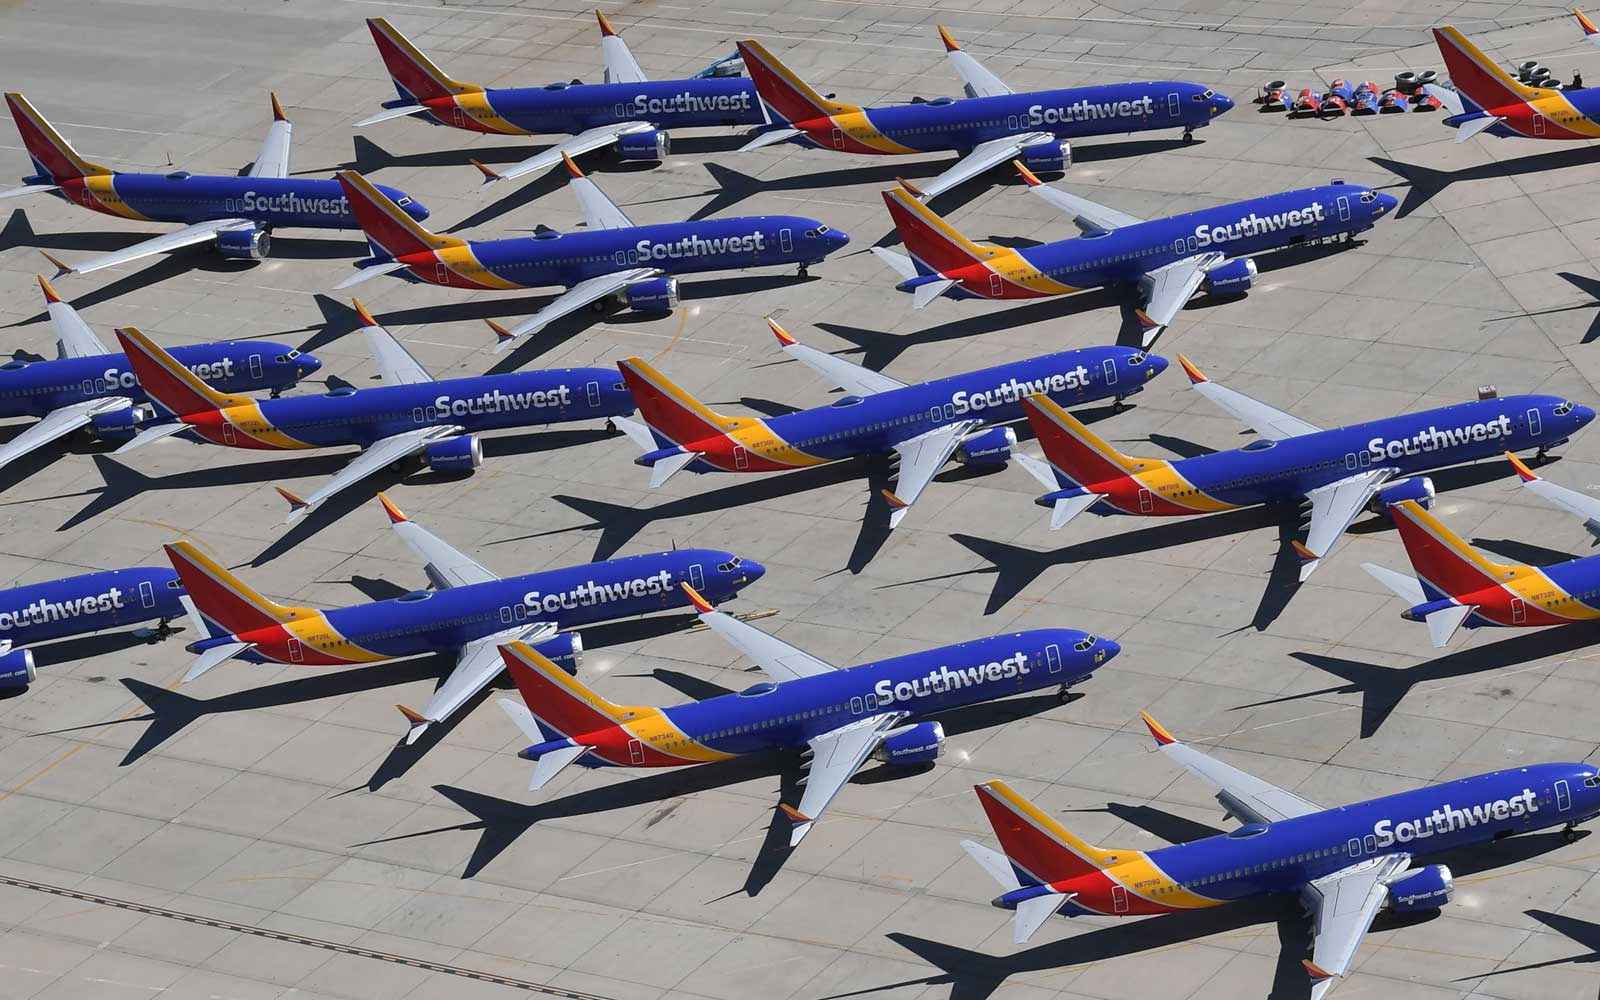 Southwest Airlines Boeing 737 MAX aircraft are parked on the tarmac